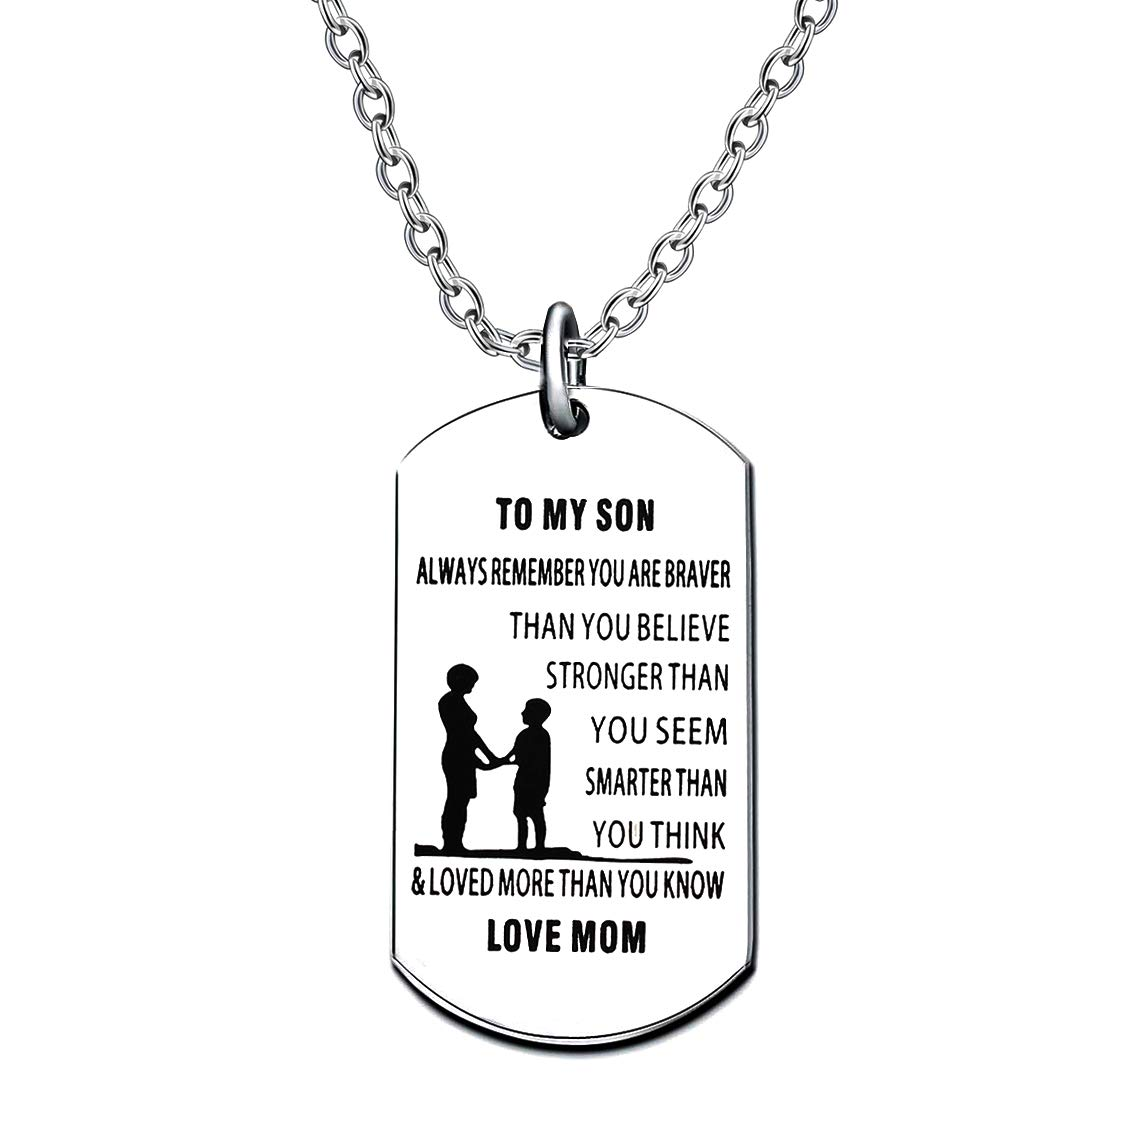 Mother Son Dog Tag Necklace for Men Boy to My Son You are Braver Stronger Smarter Than You Think Love Mom Stainless Steel lauhonmin AN095-CA